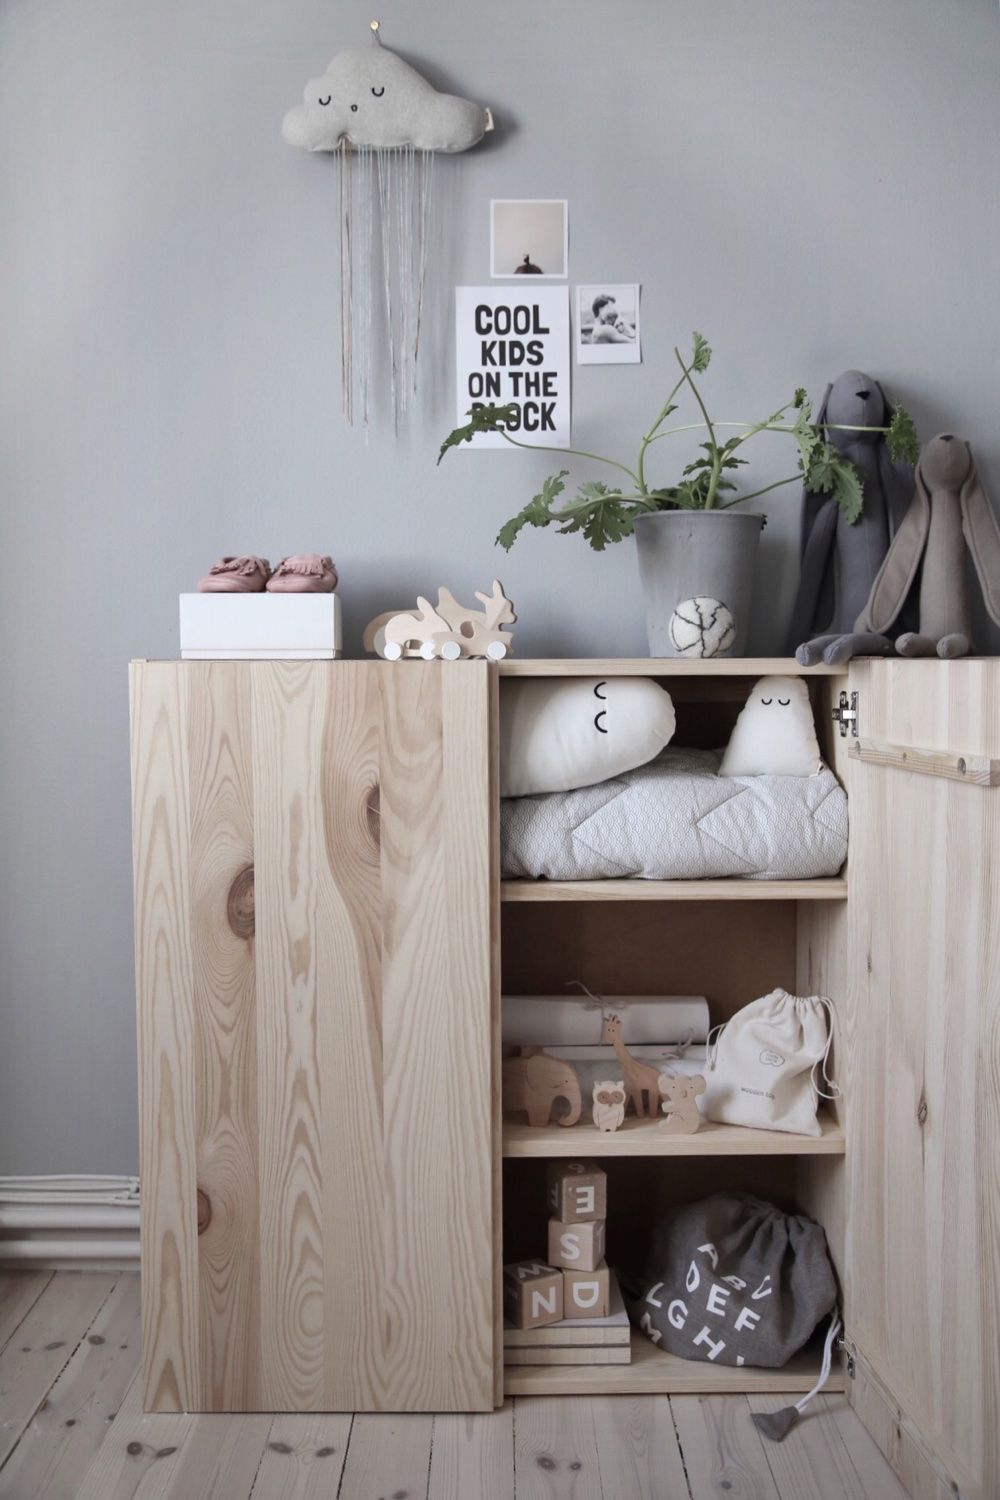 5 Ways To Decorate The Ikea Ivar Cabinet Ikea Ivar Cabinet Kids